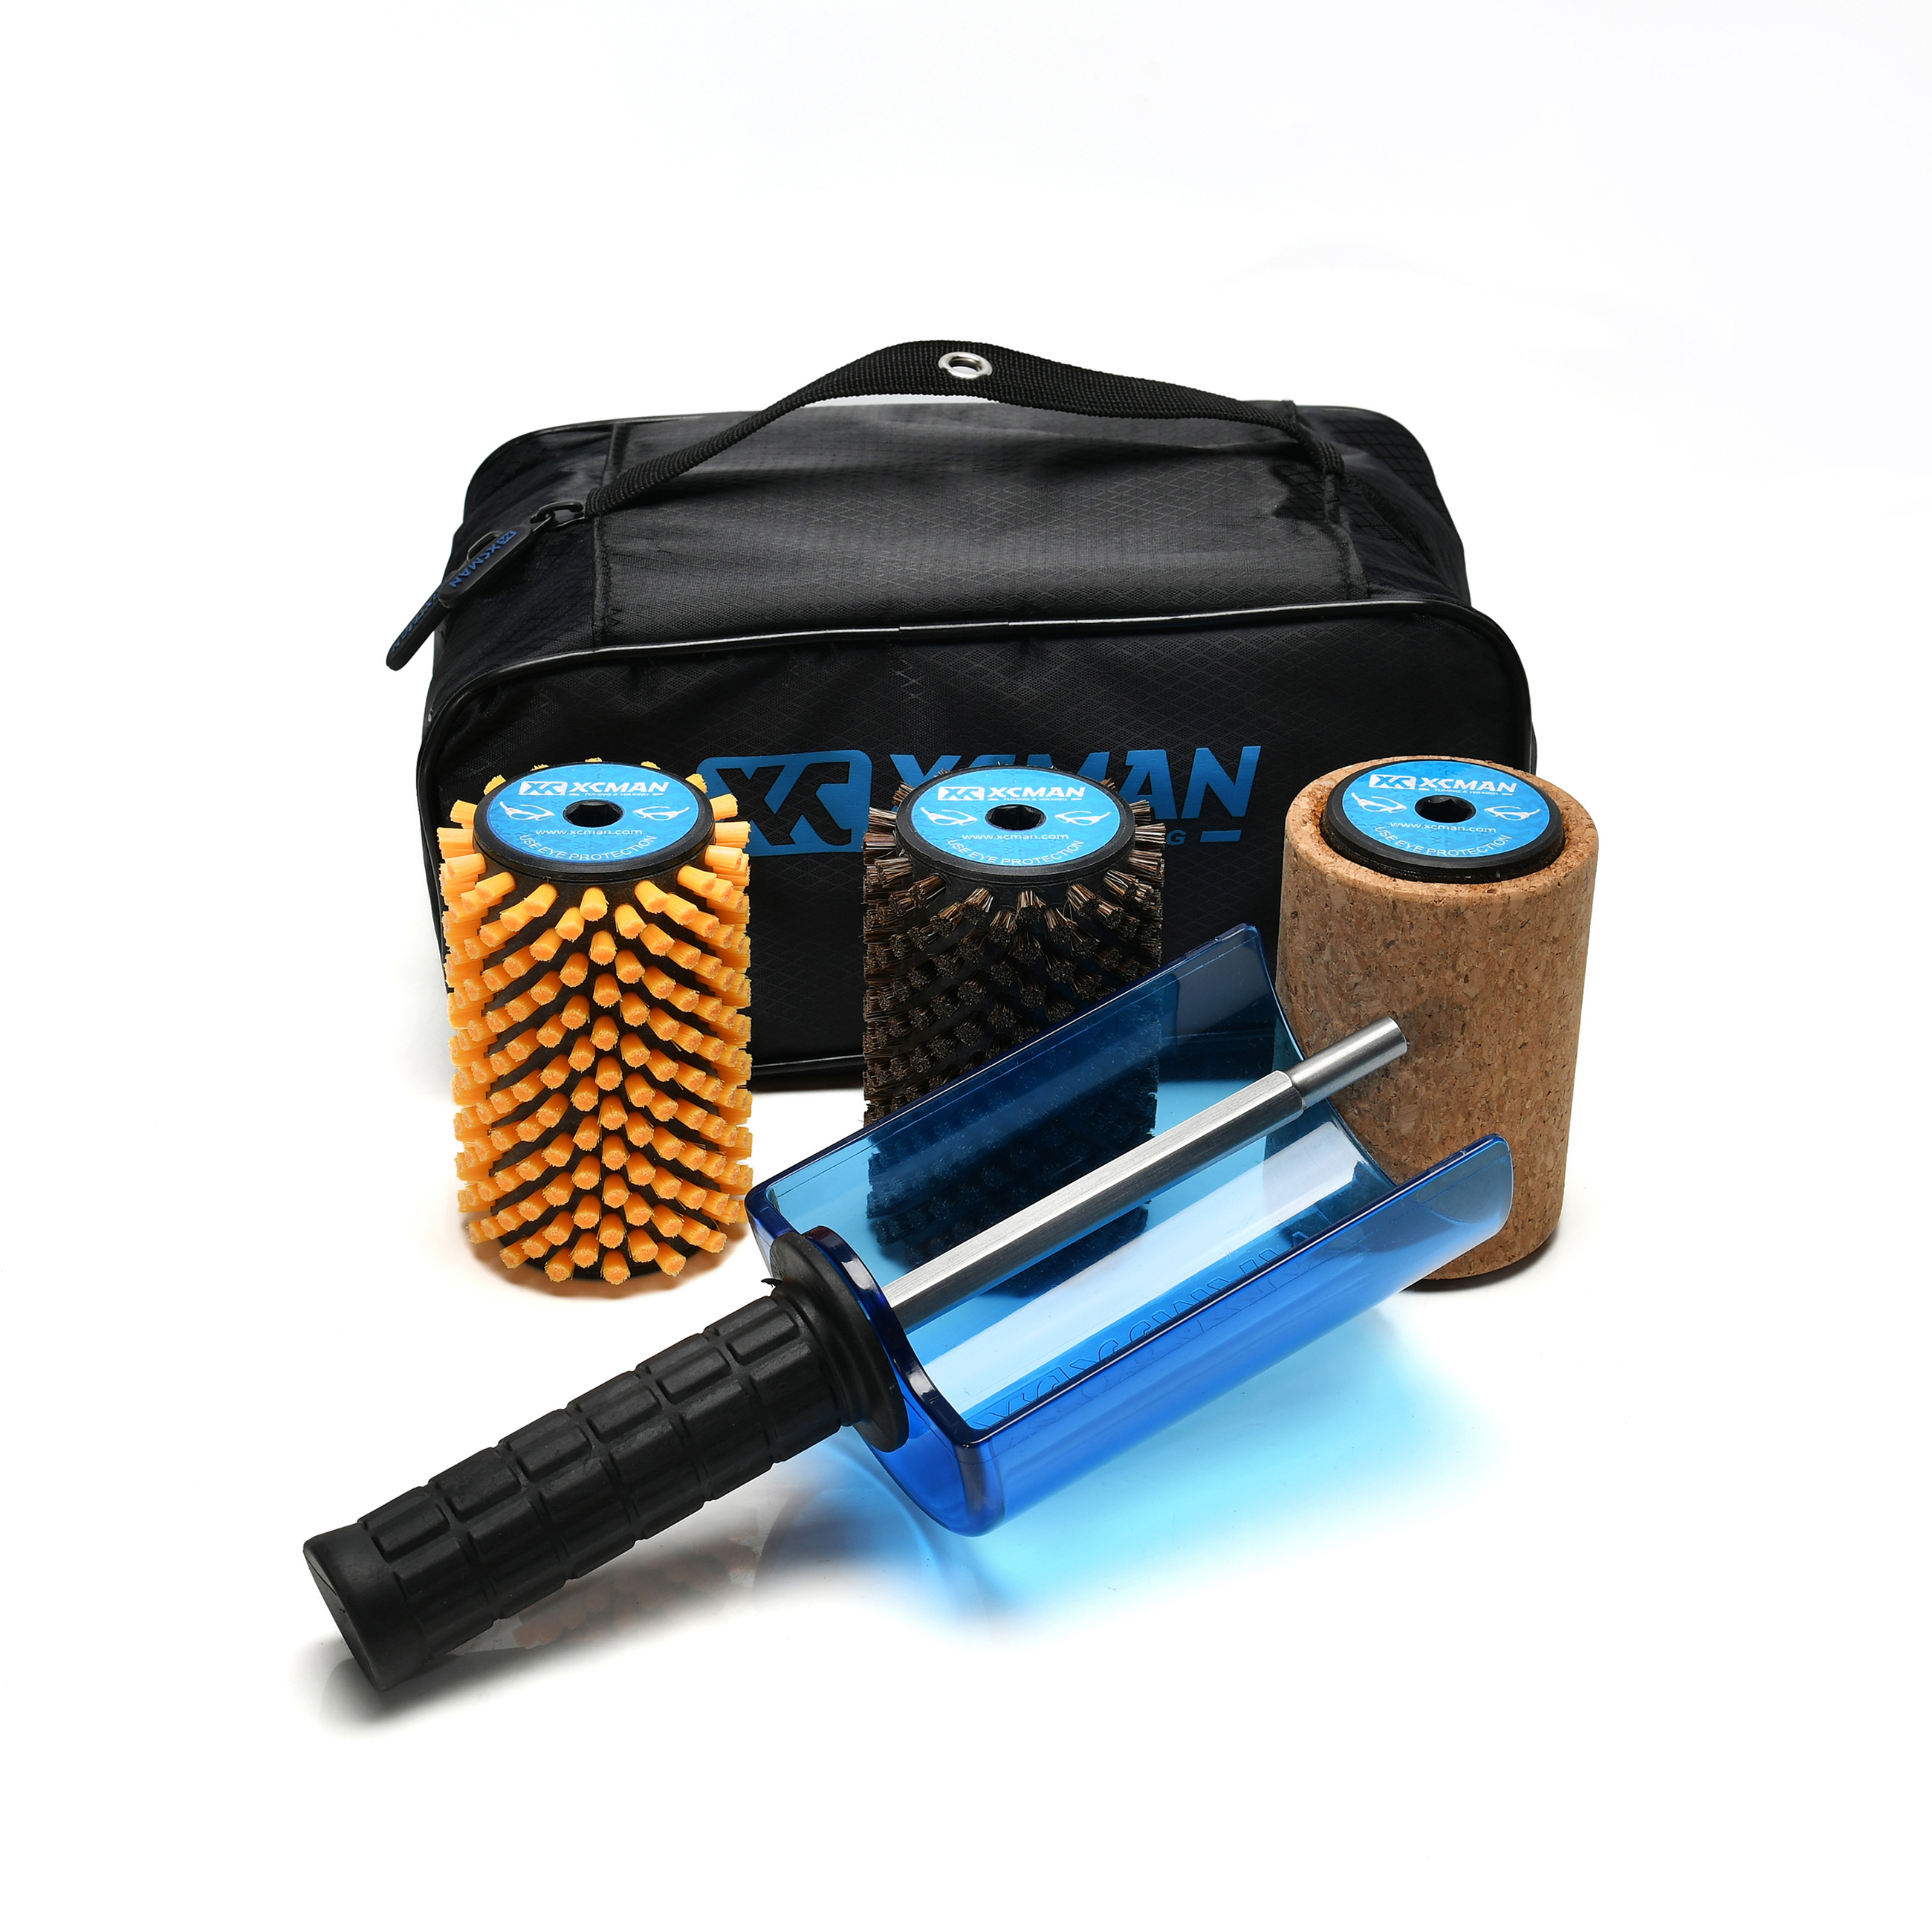 XCMAN Ski Roto Brush Kit Roto Brush Handle Axle with All 3 Brushes:Nylon,Horsehiar,Brass/Cork